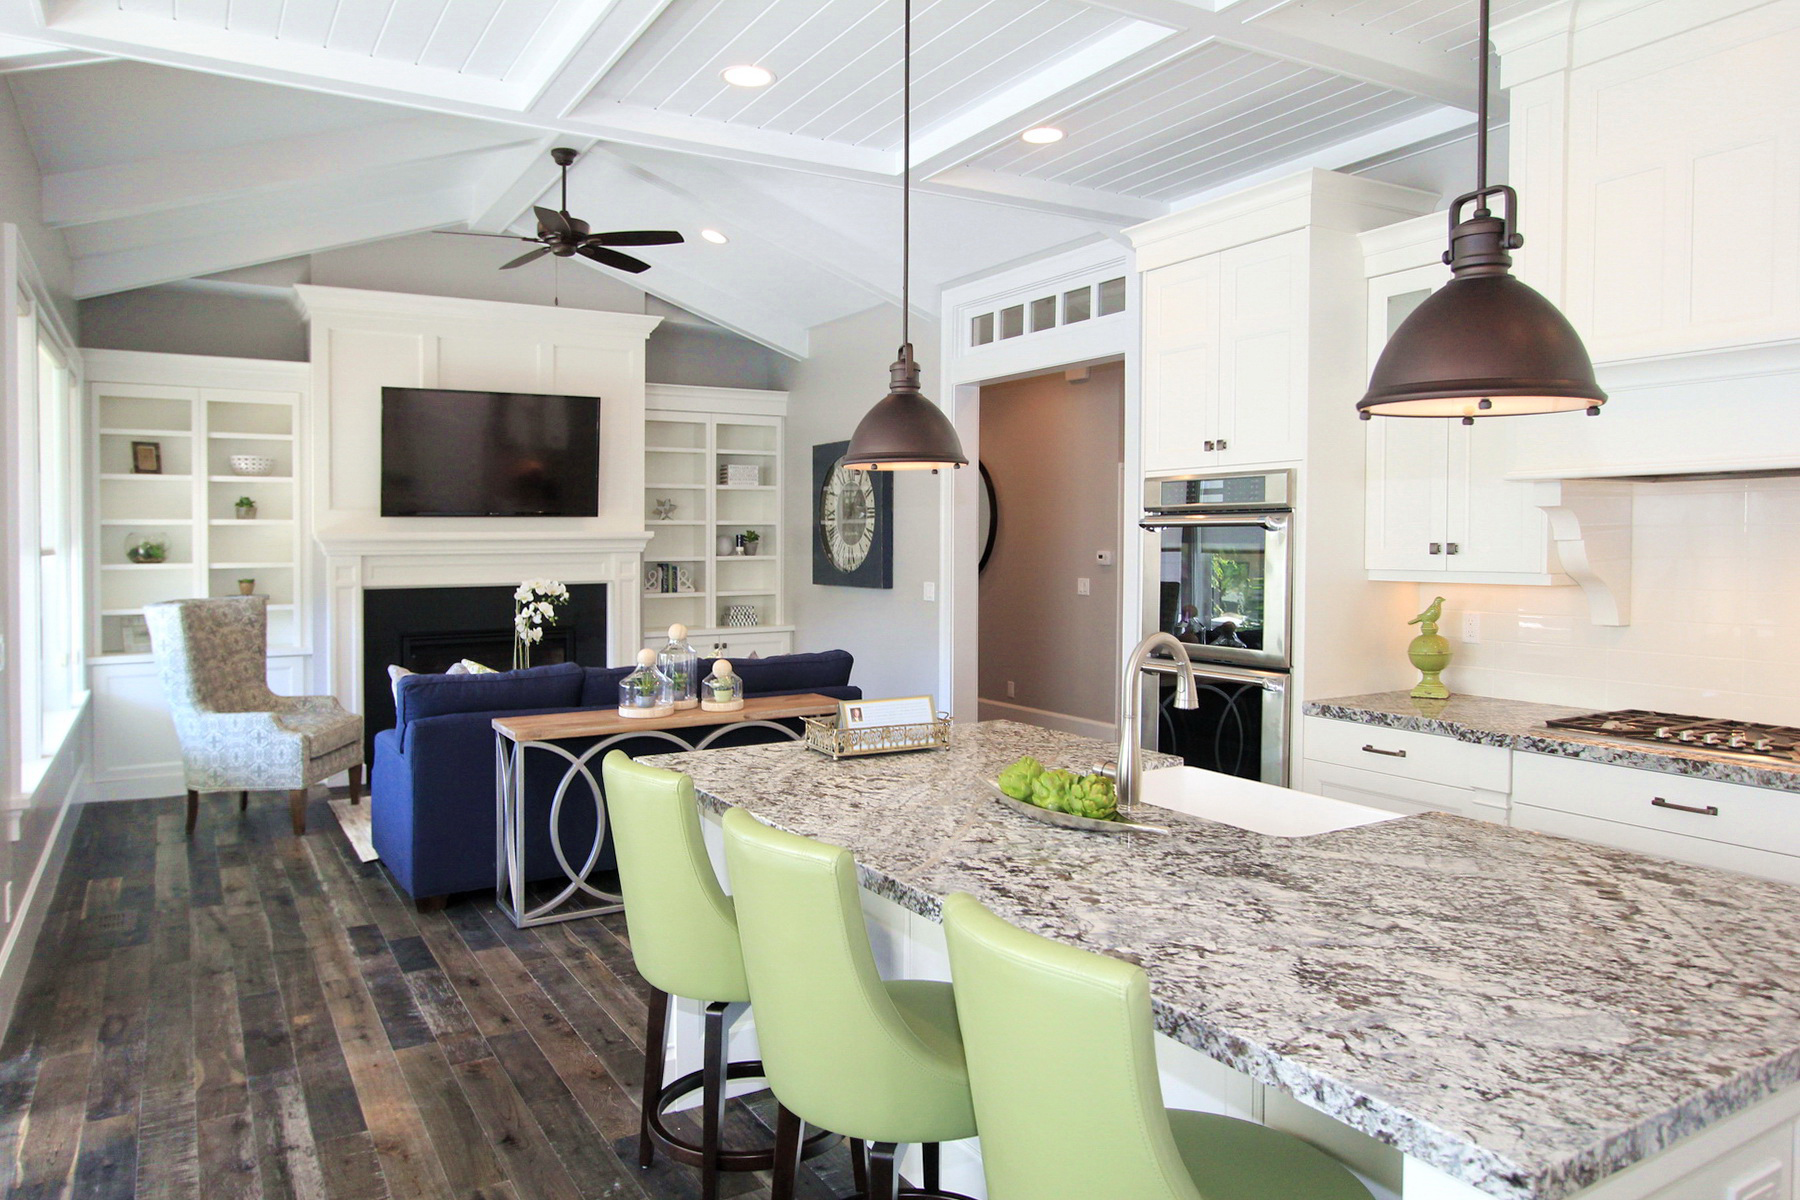 Lighting Options Over The Kitchen Island - Large kitchen pendants